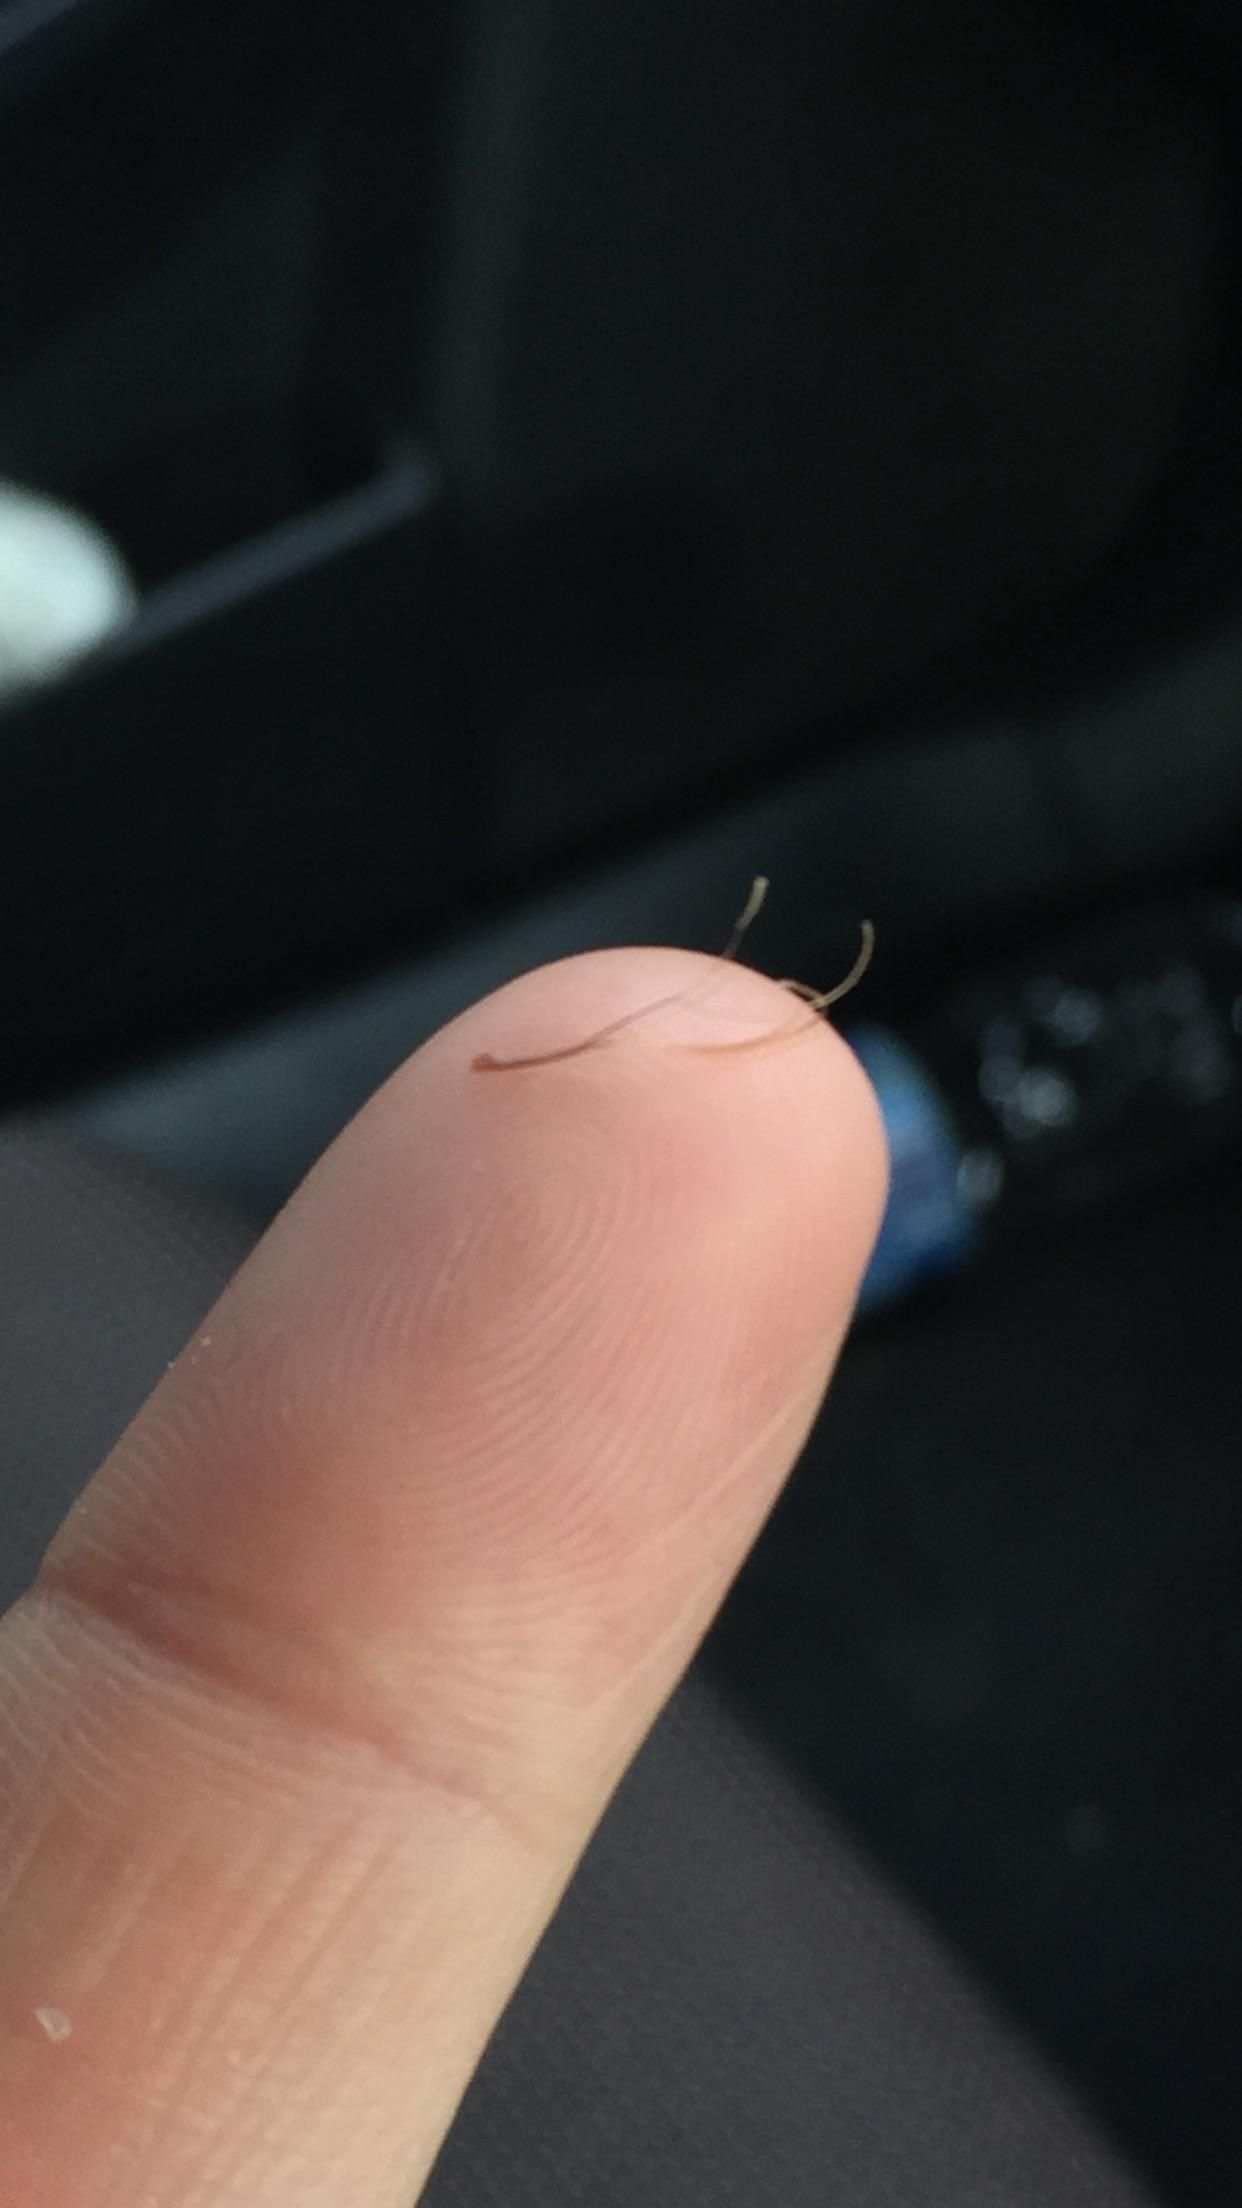 Multiple hairs growing out of one follicle